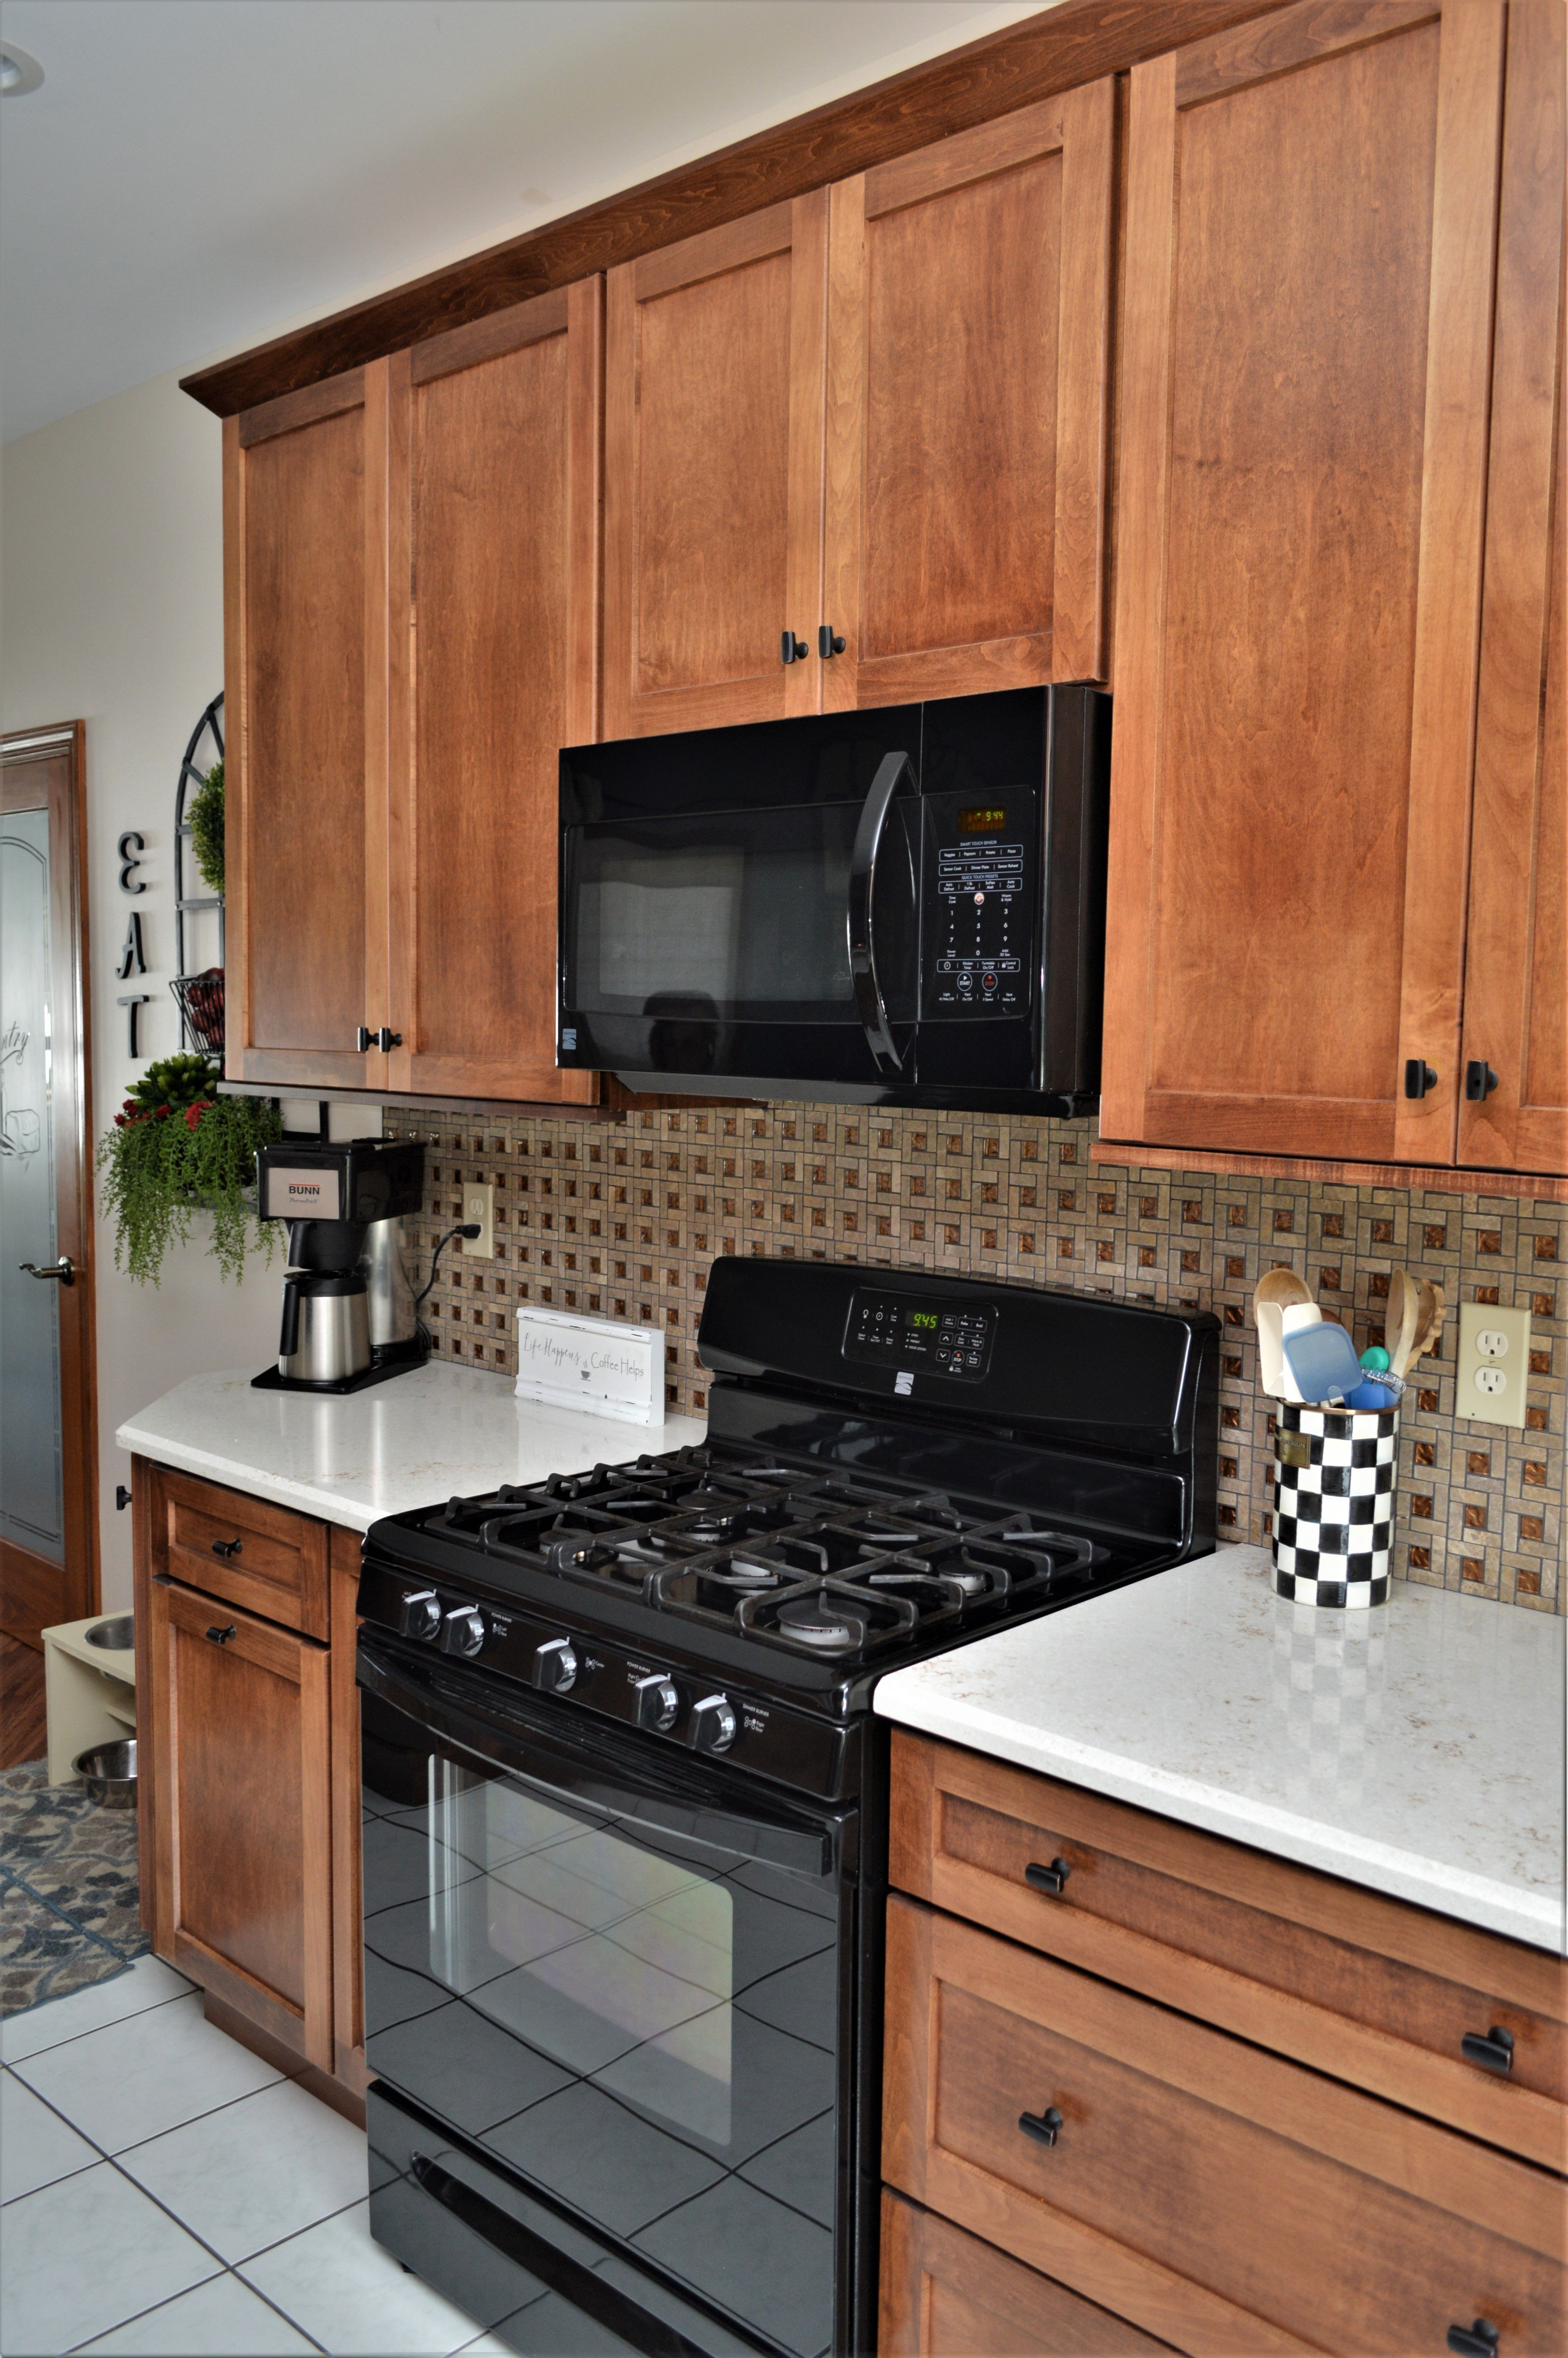 Bailey S Cabinets Haas Signature Collection Maple Pecan Finish Shakertown V Door Style Maple Cabinets Cabinet Grandmas Kitchen